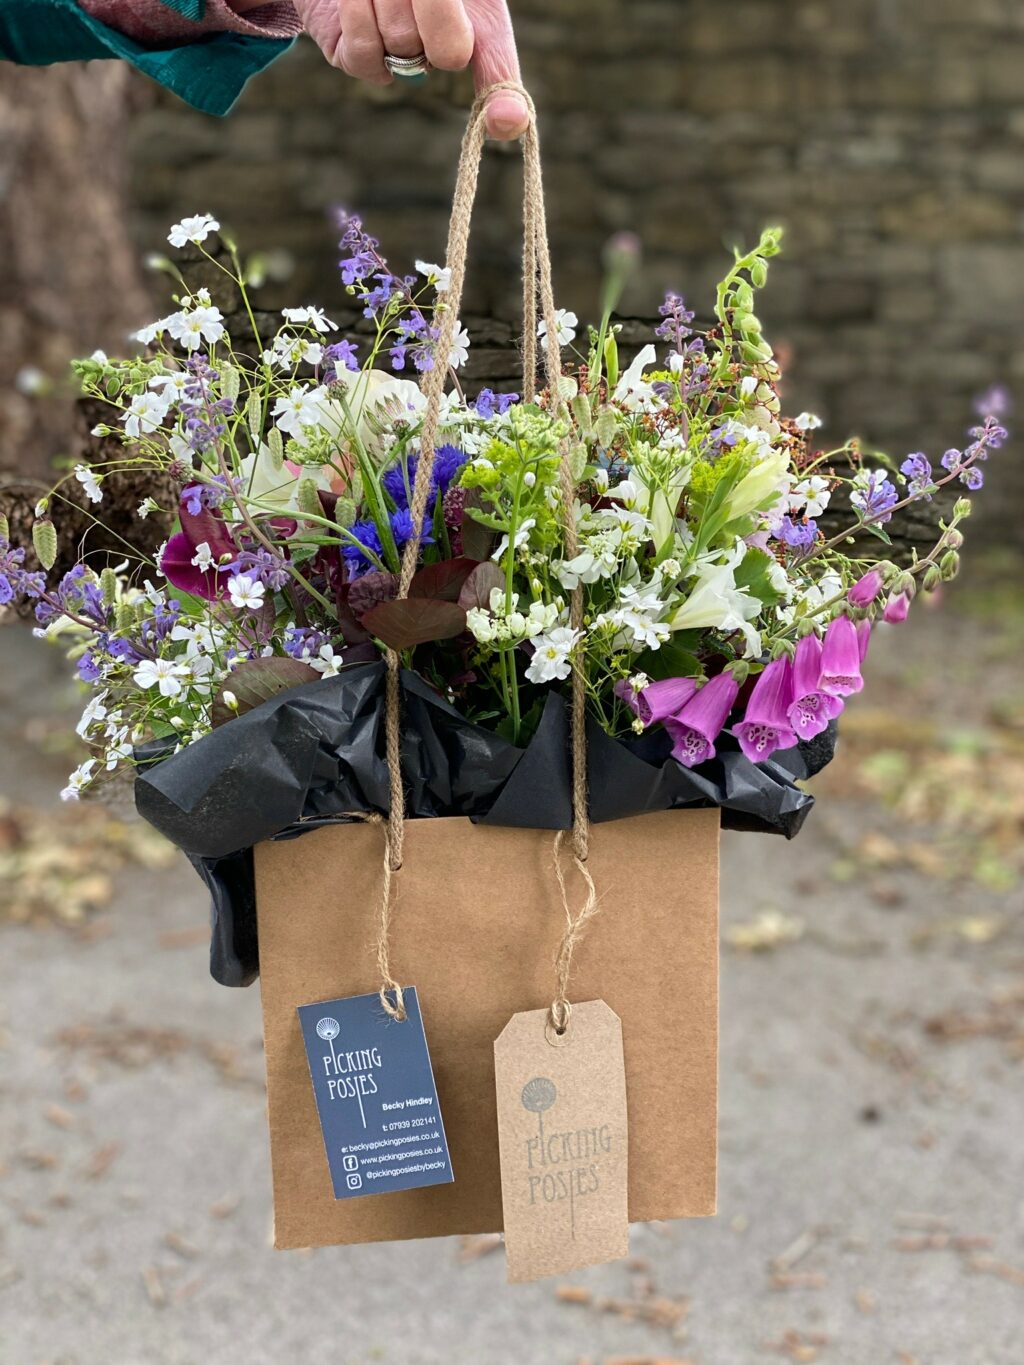 Posies of British cut flowers gathered in a small gift bag ready for local delivery by Becky of Picking Posies, Lancashire.